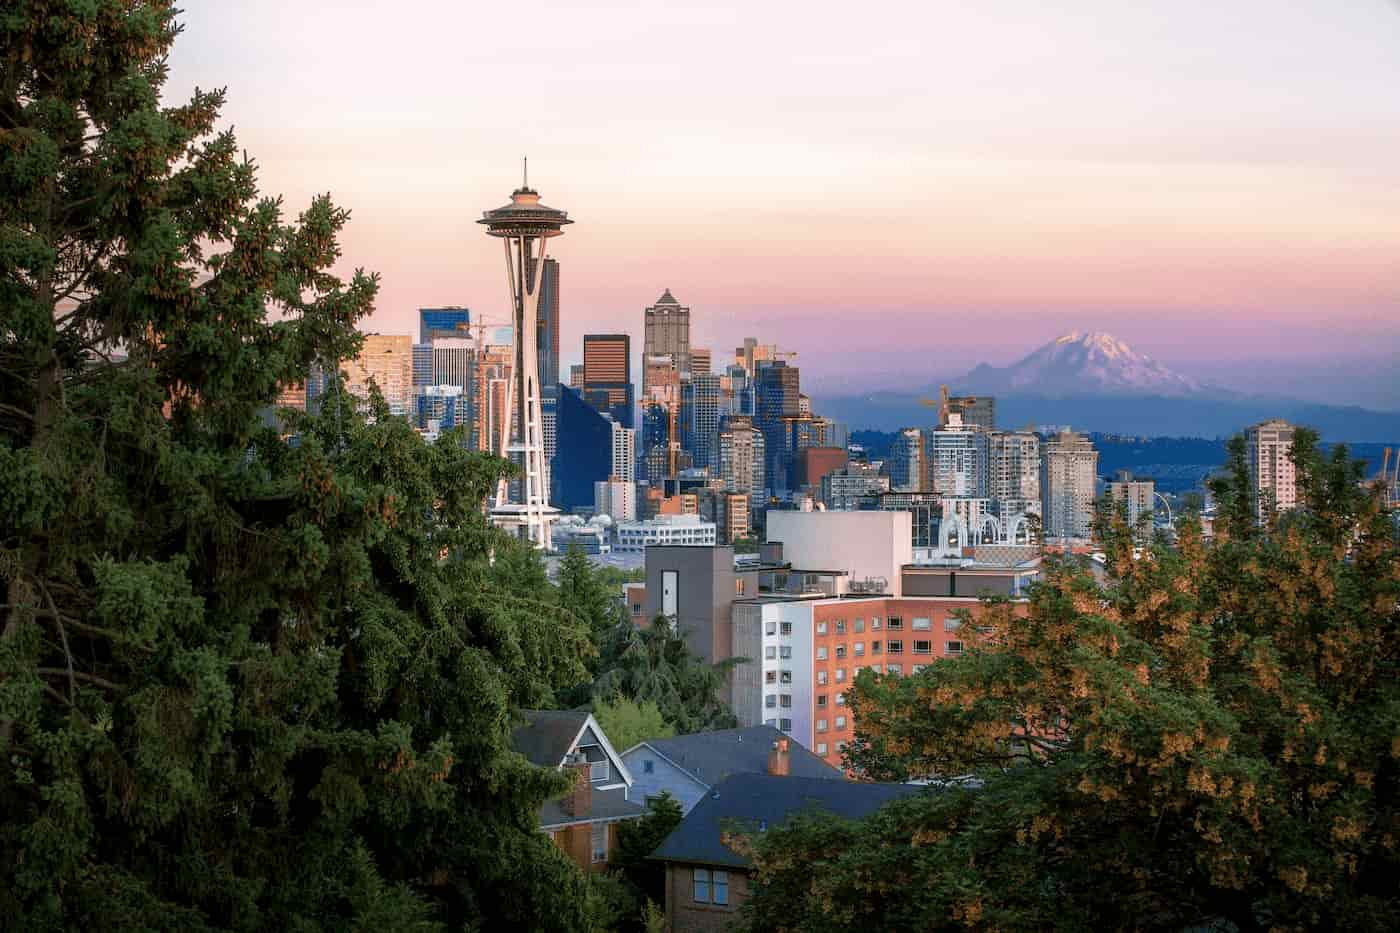 mynd property management most popular seattle area zip codes